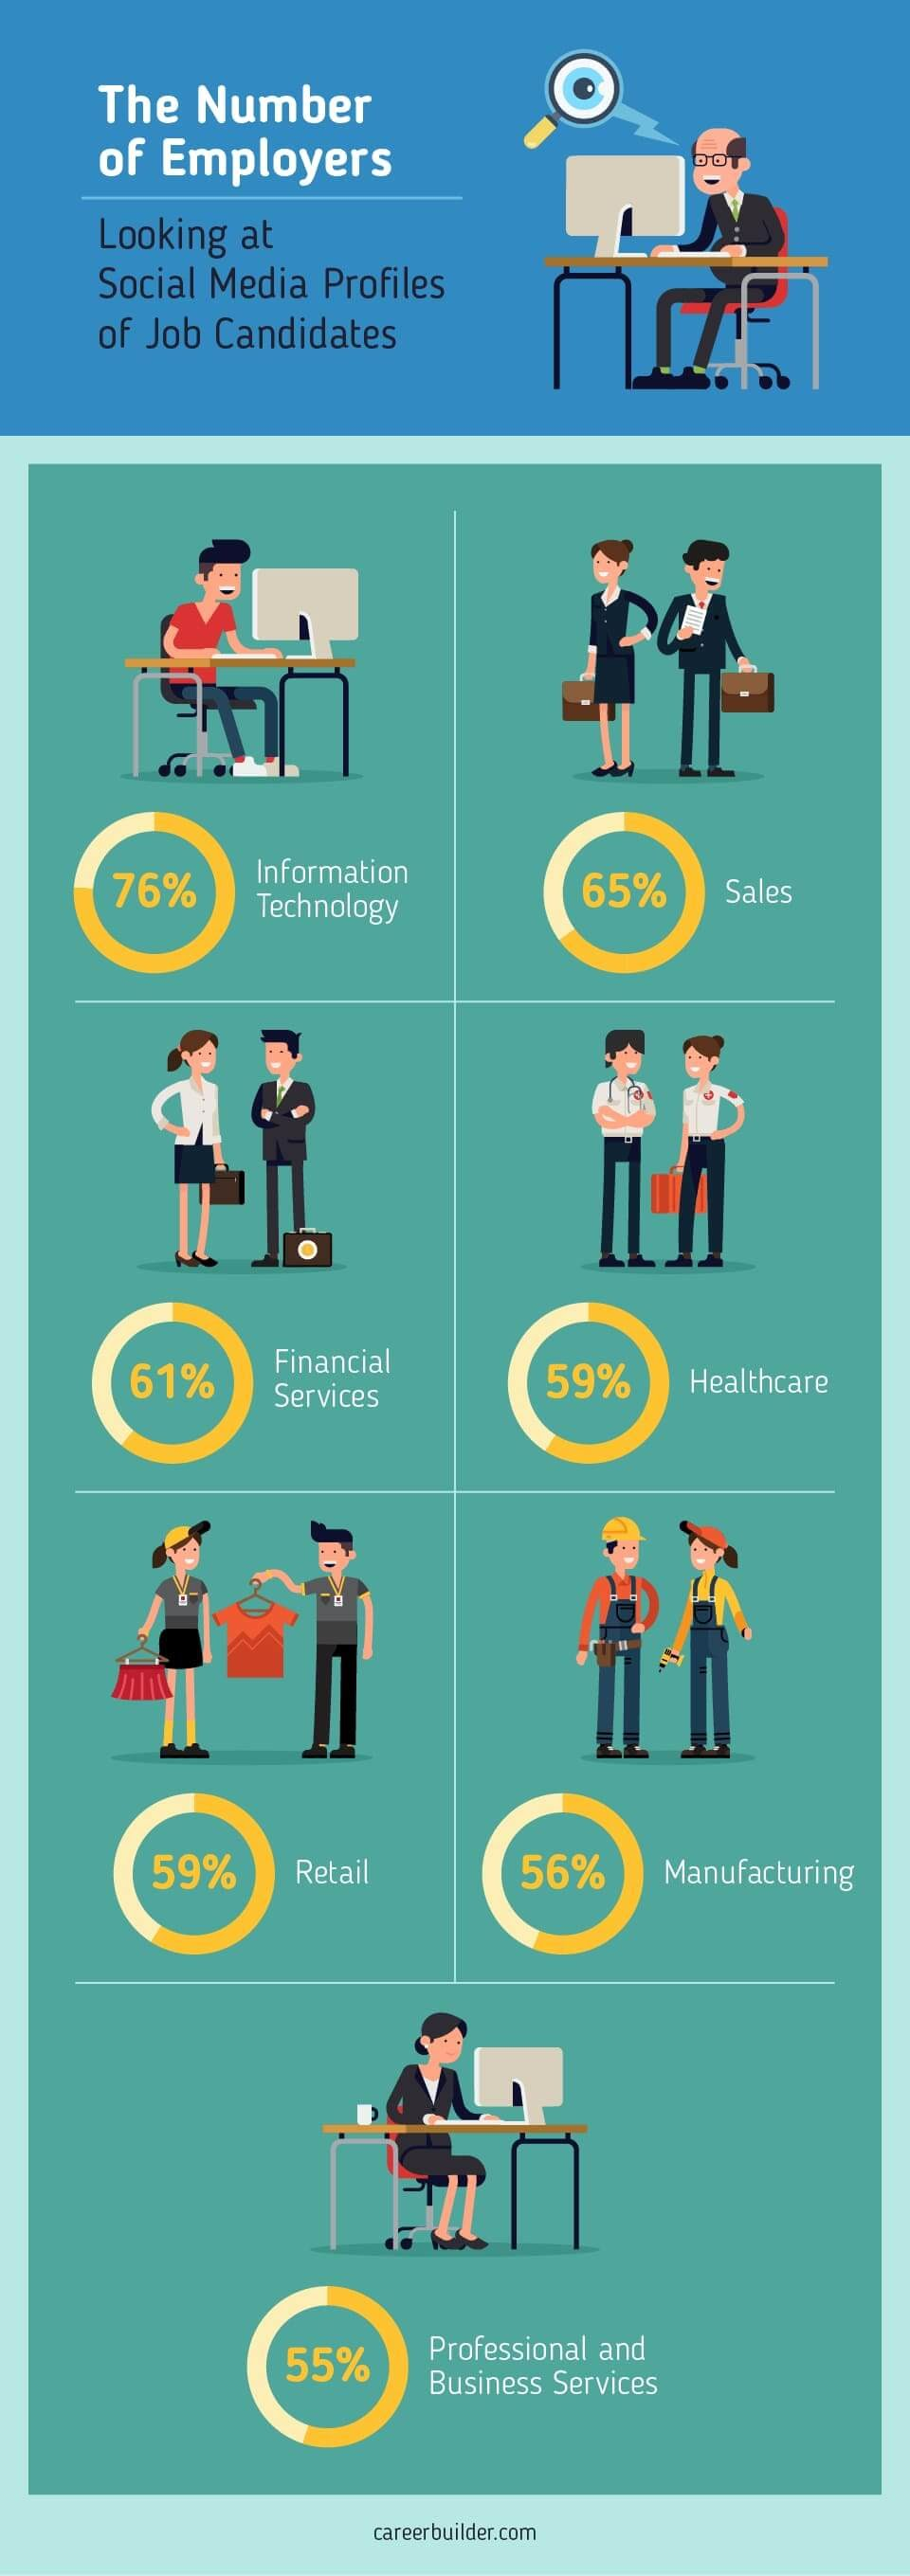 The Number of Employers Looking at Social Media Profiles of Job Candidate - #Infographic